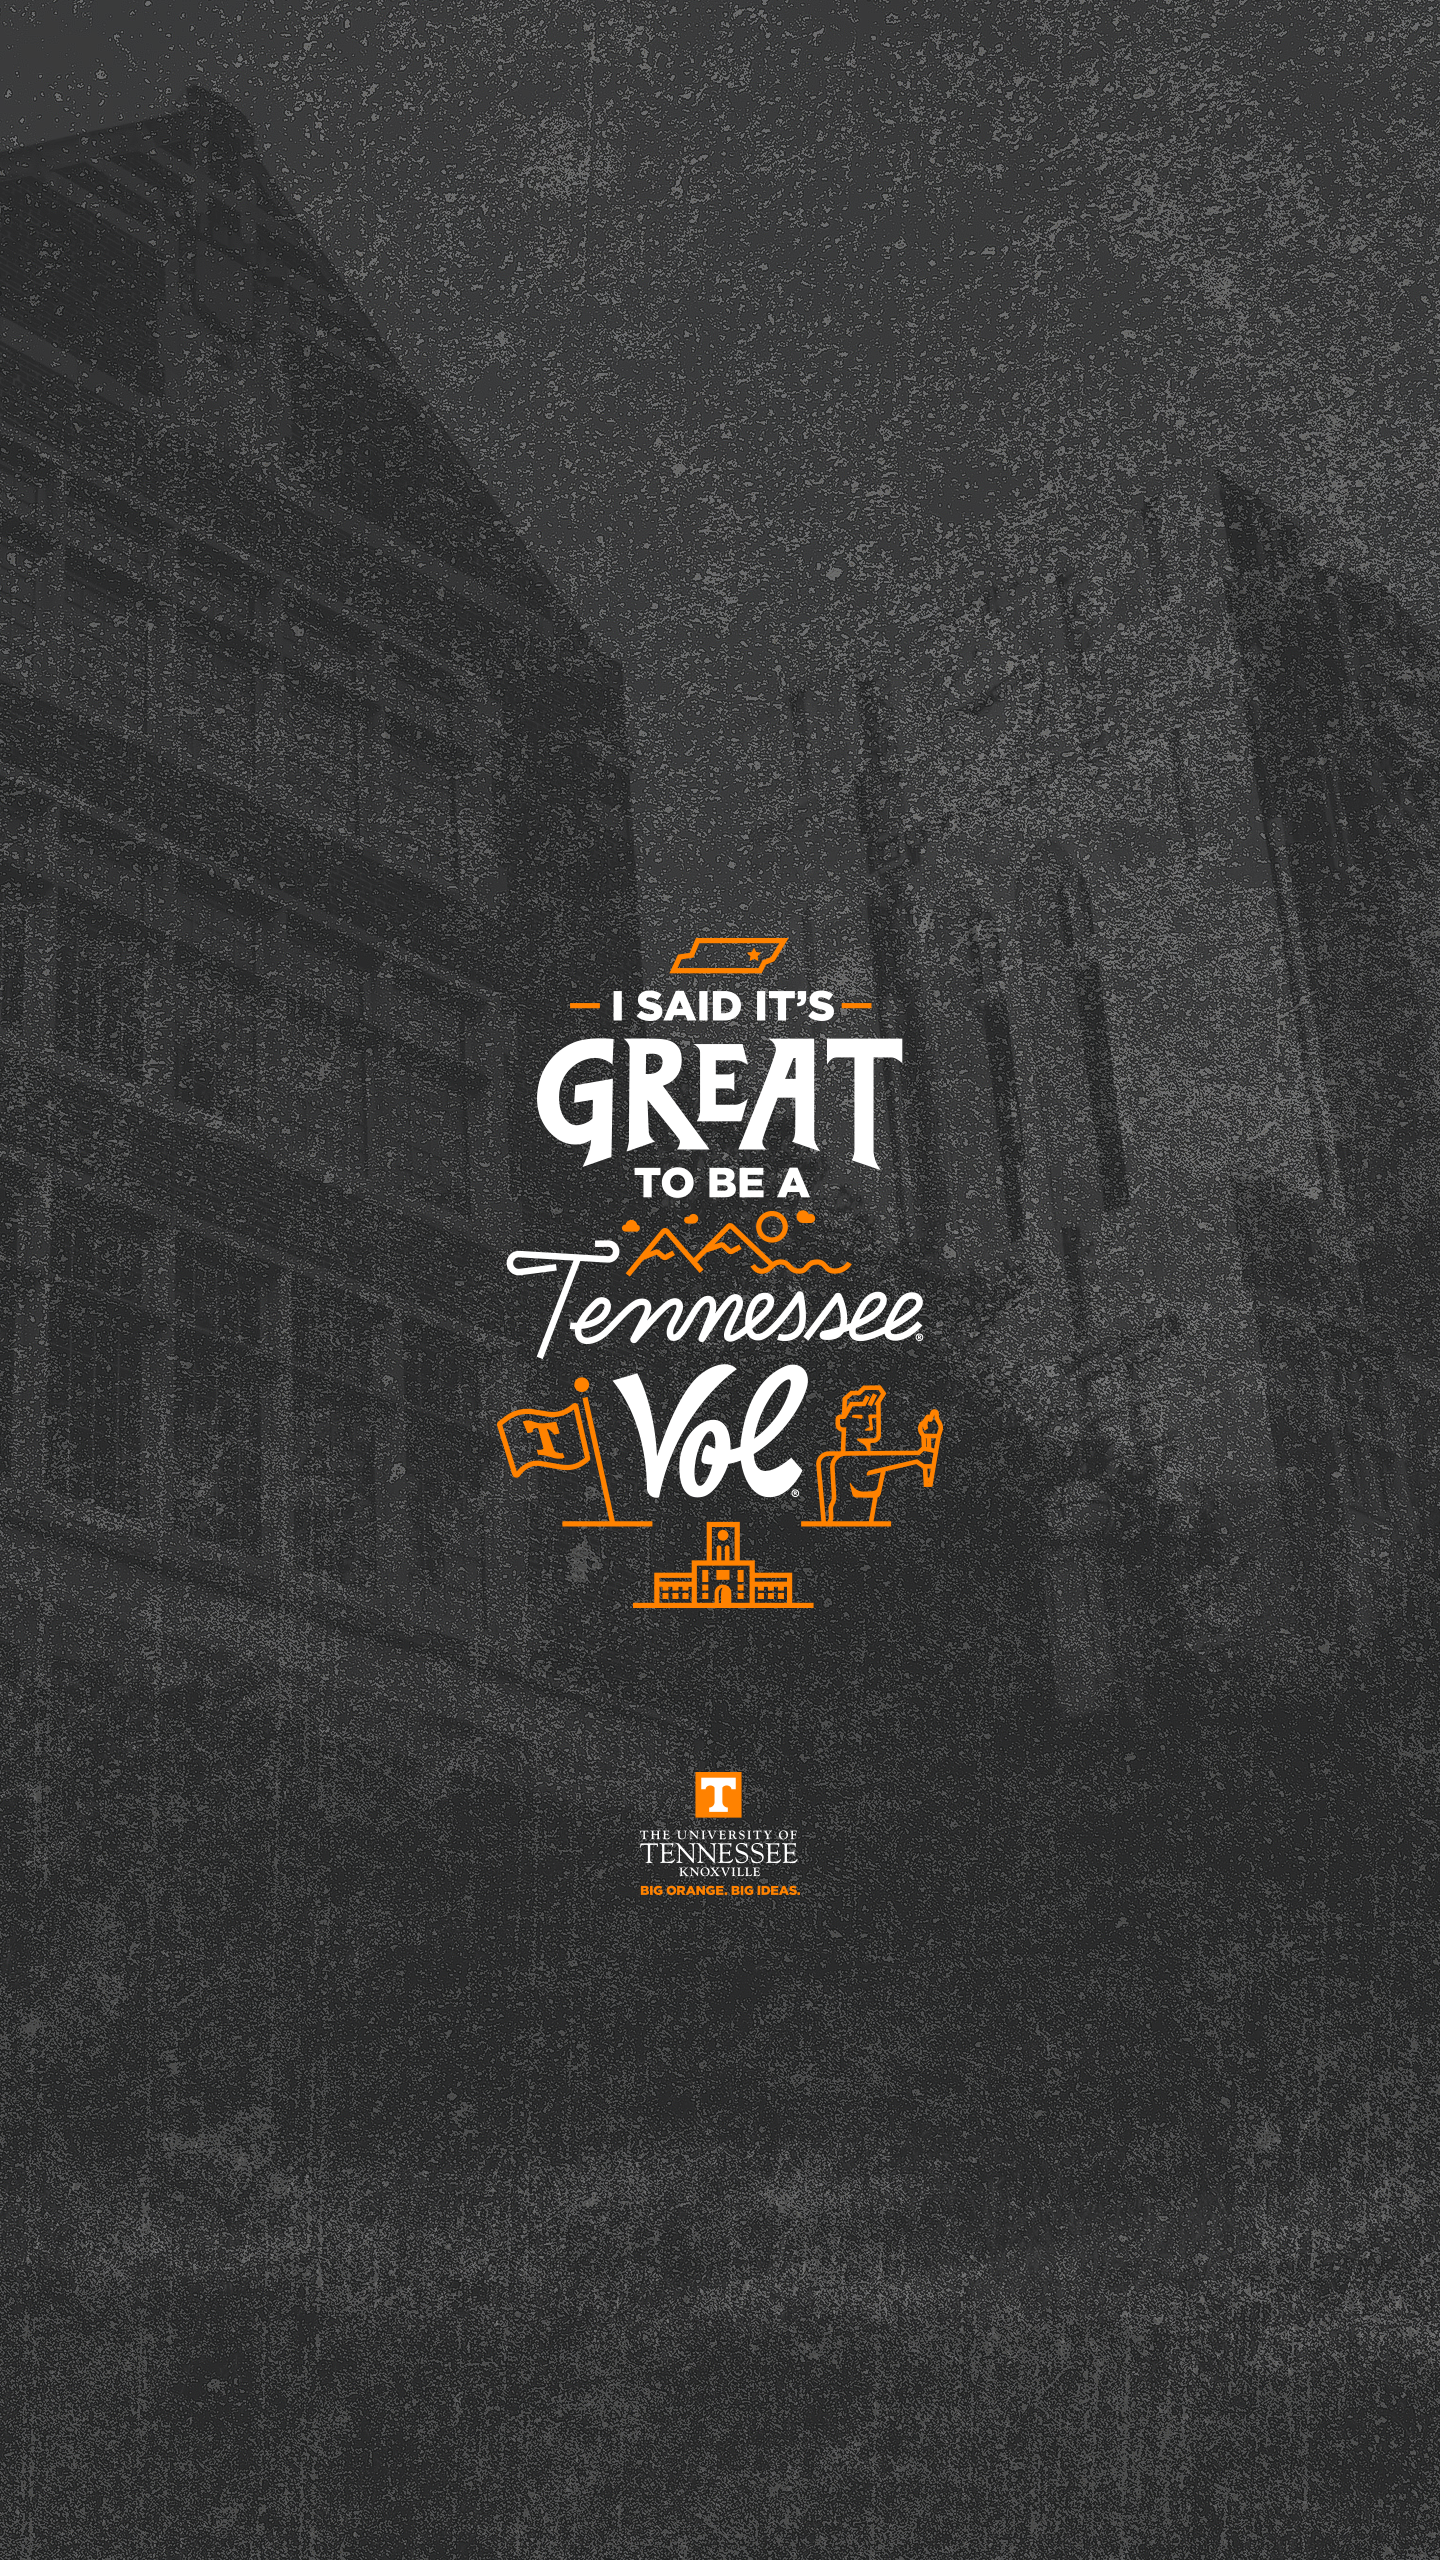 University Of Tennessee Wallpaper For Computer Poster 1440x2560 Download Hd Wallpaper Wallpapertip